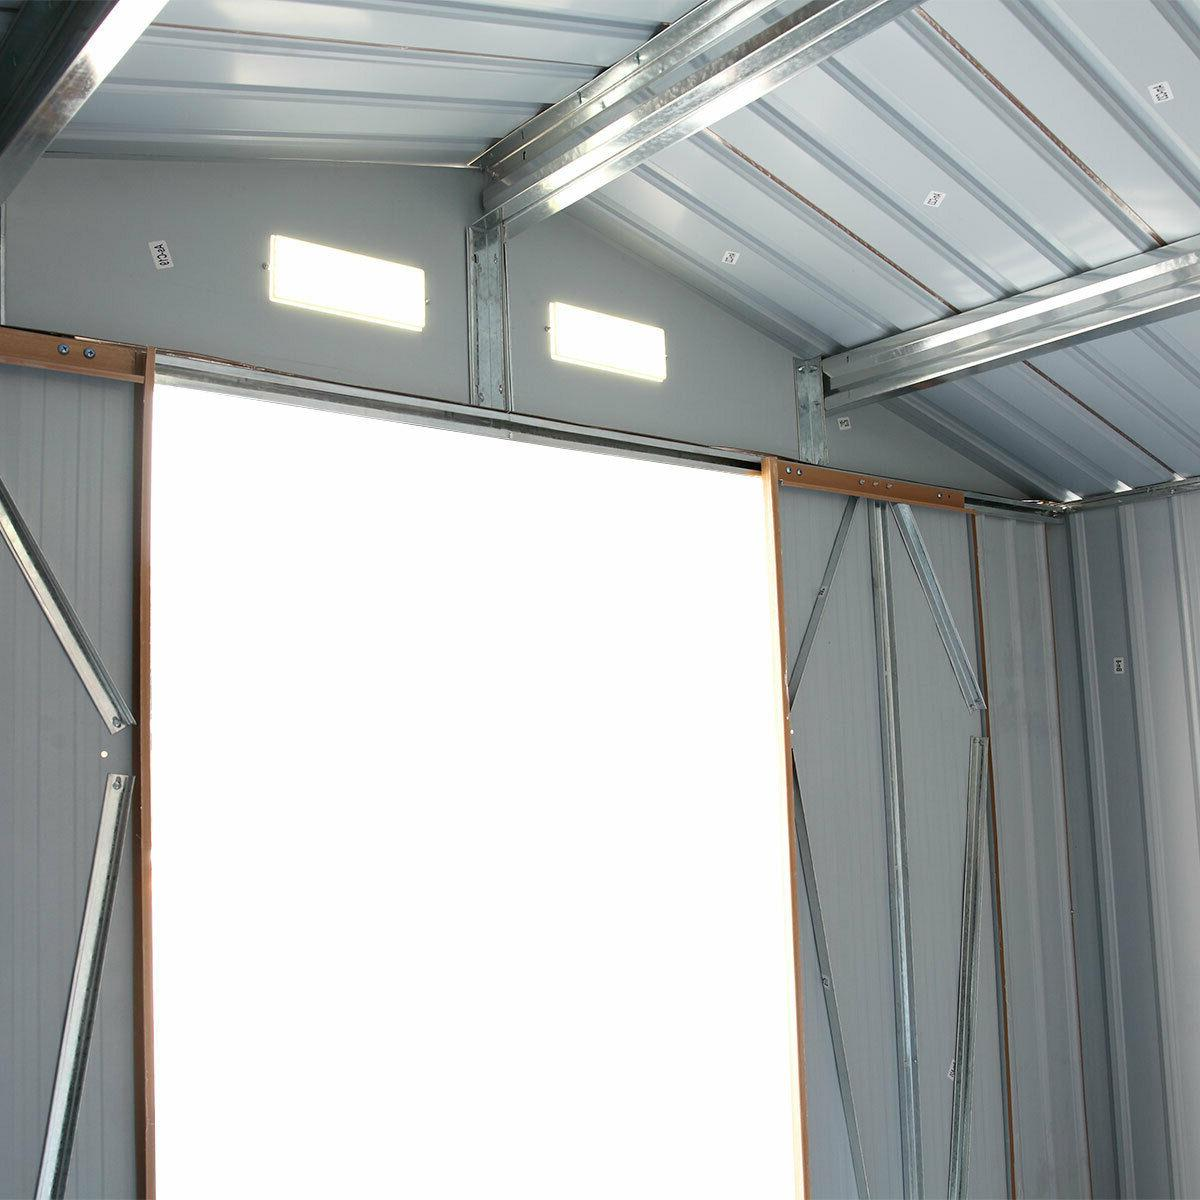 6' Garden Shed for Gable Roof